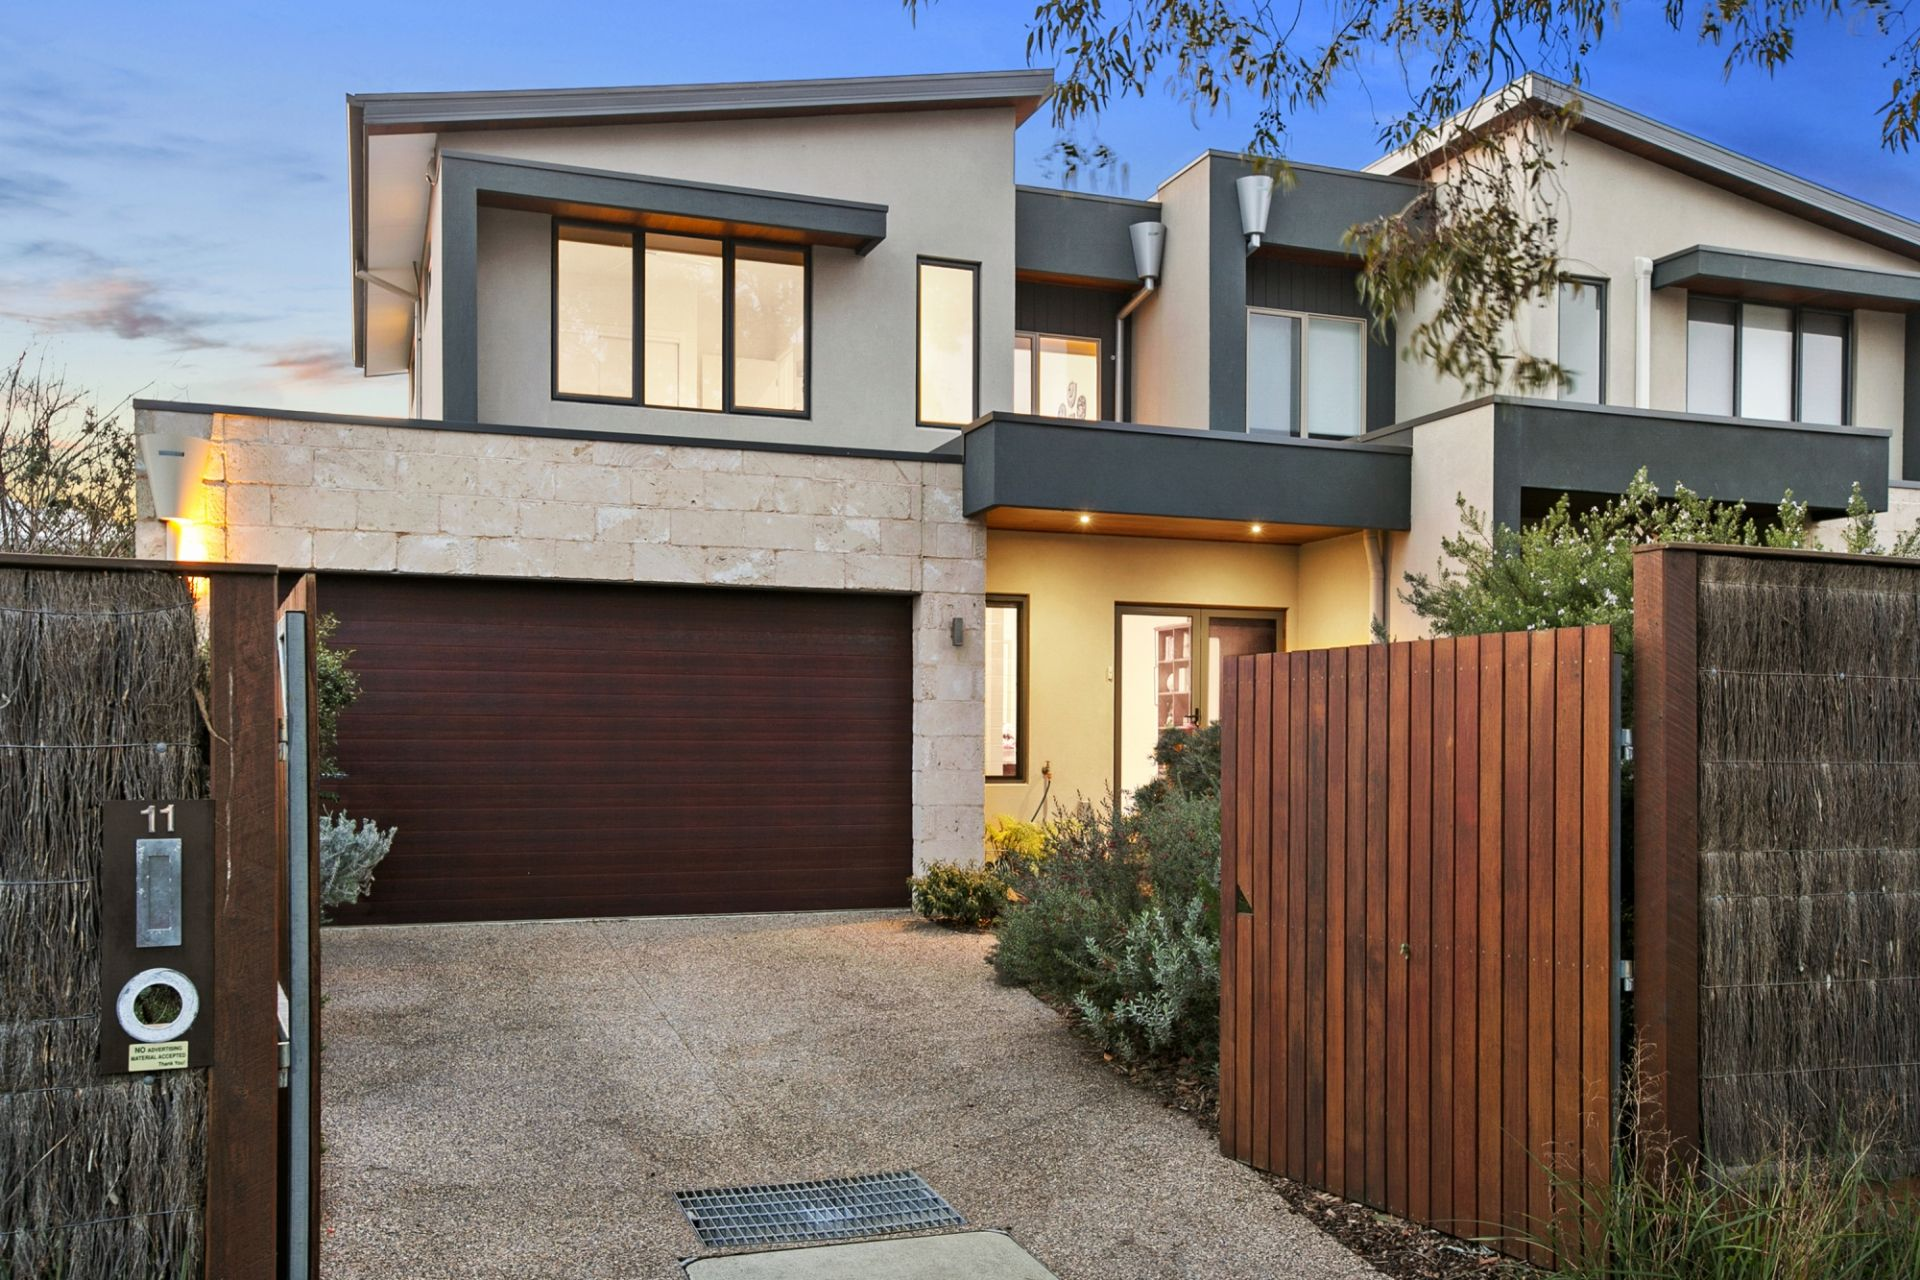 11 Downward Street, MORNINGTON, VIC, 3931 - Image